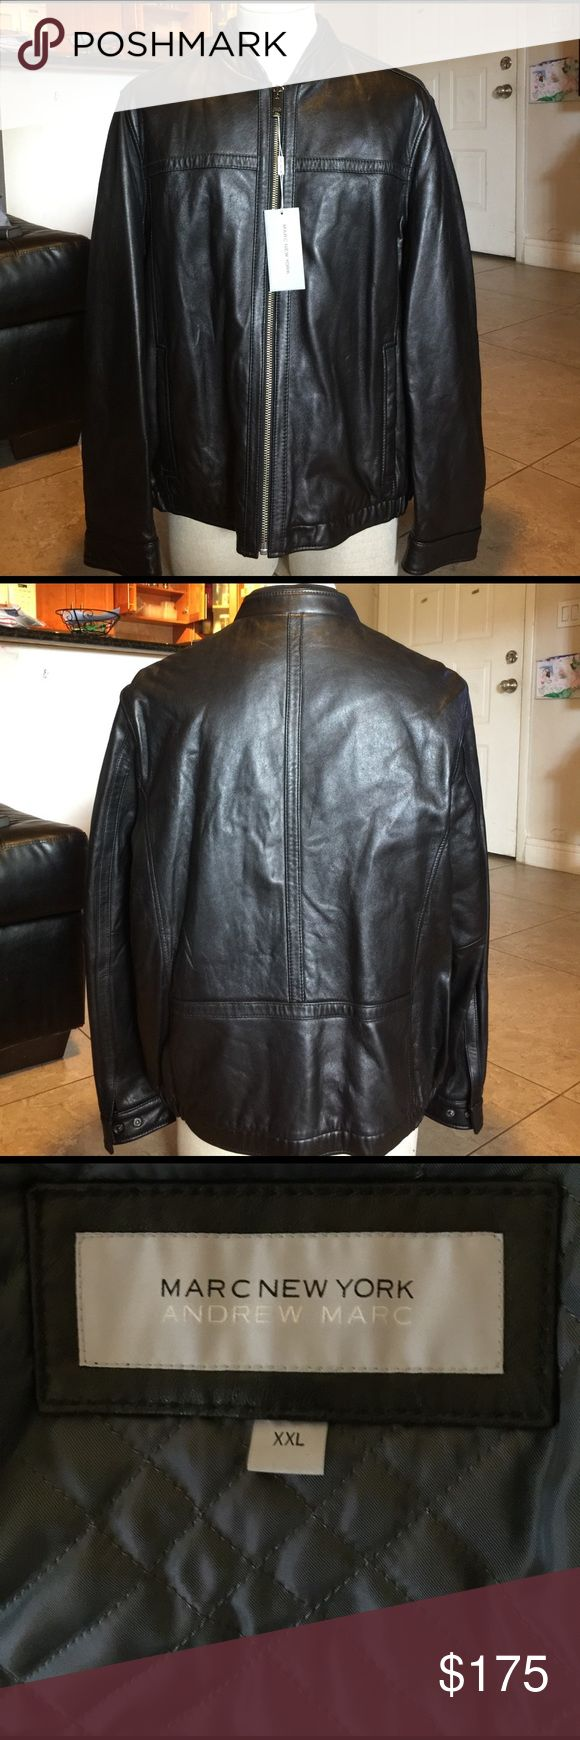 Andrew Marc New York leather jacket Size XXL. New Andrew Marc New York leather jacket Size XXL. Front zipper. Side pocket and pockets inside. No scratches, no wear and no rips. Andrew Marc Jackets & Coats